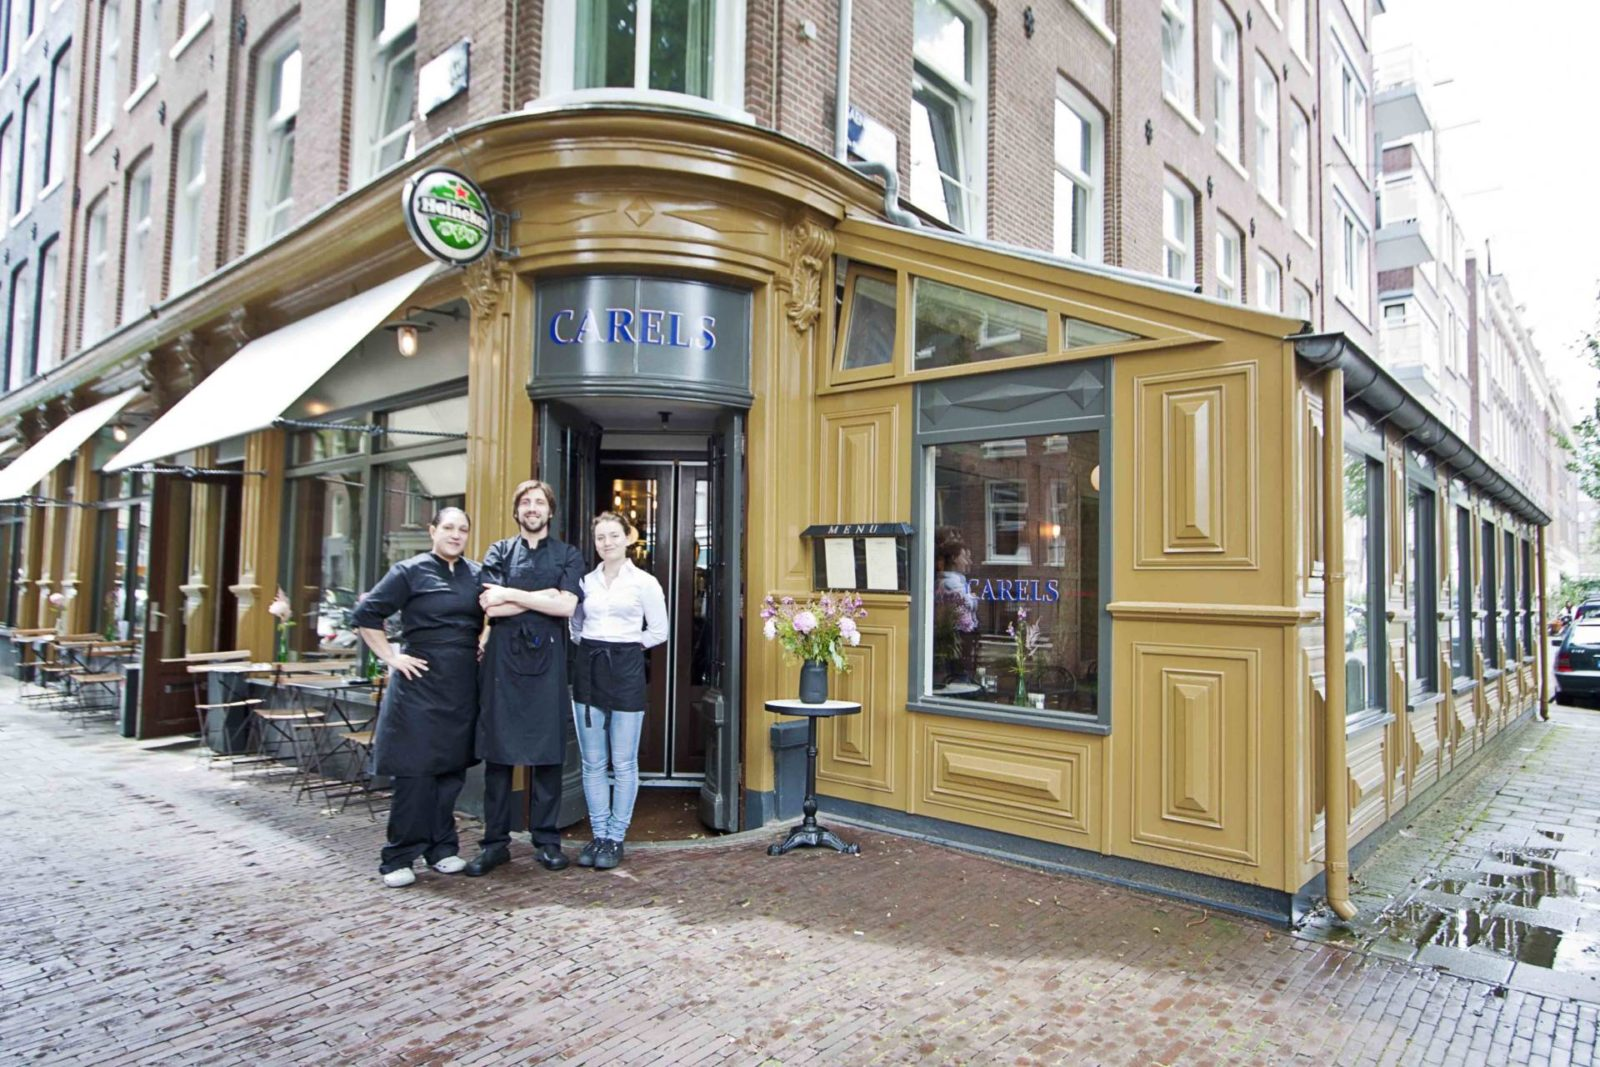 Couverts, Restaurant Carel's, Amsterdam